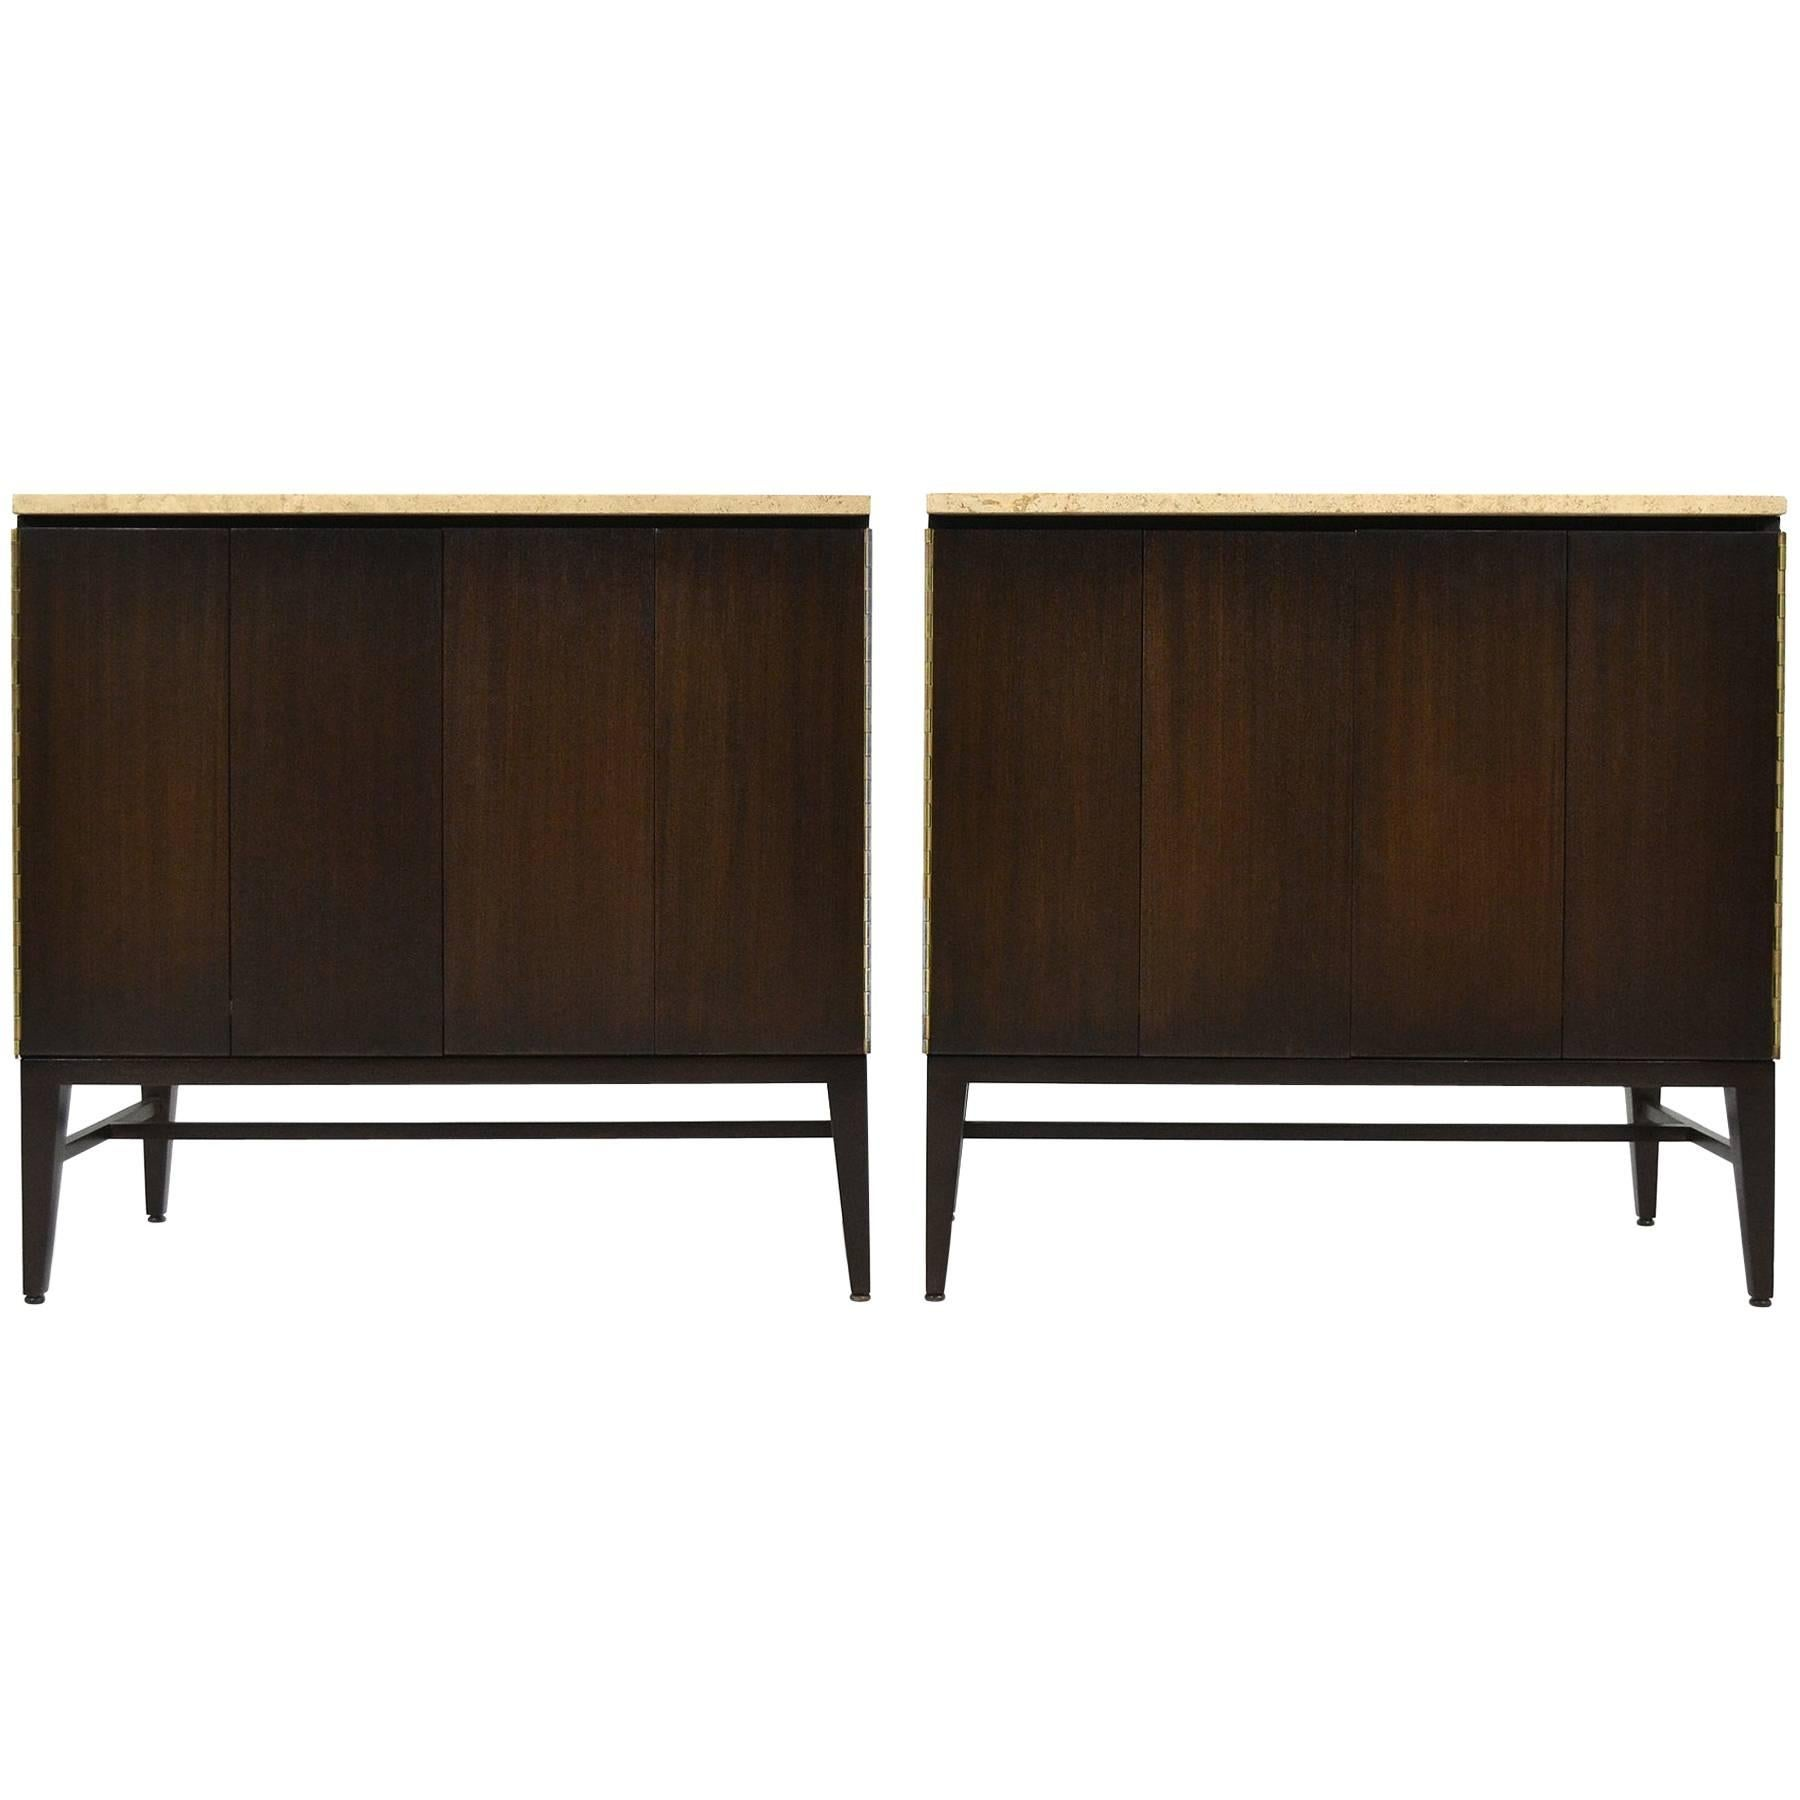 Paul McCobb Cabinets or Credenzas with Travertine Tops by Calvin